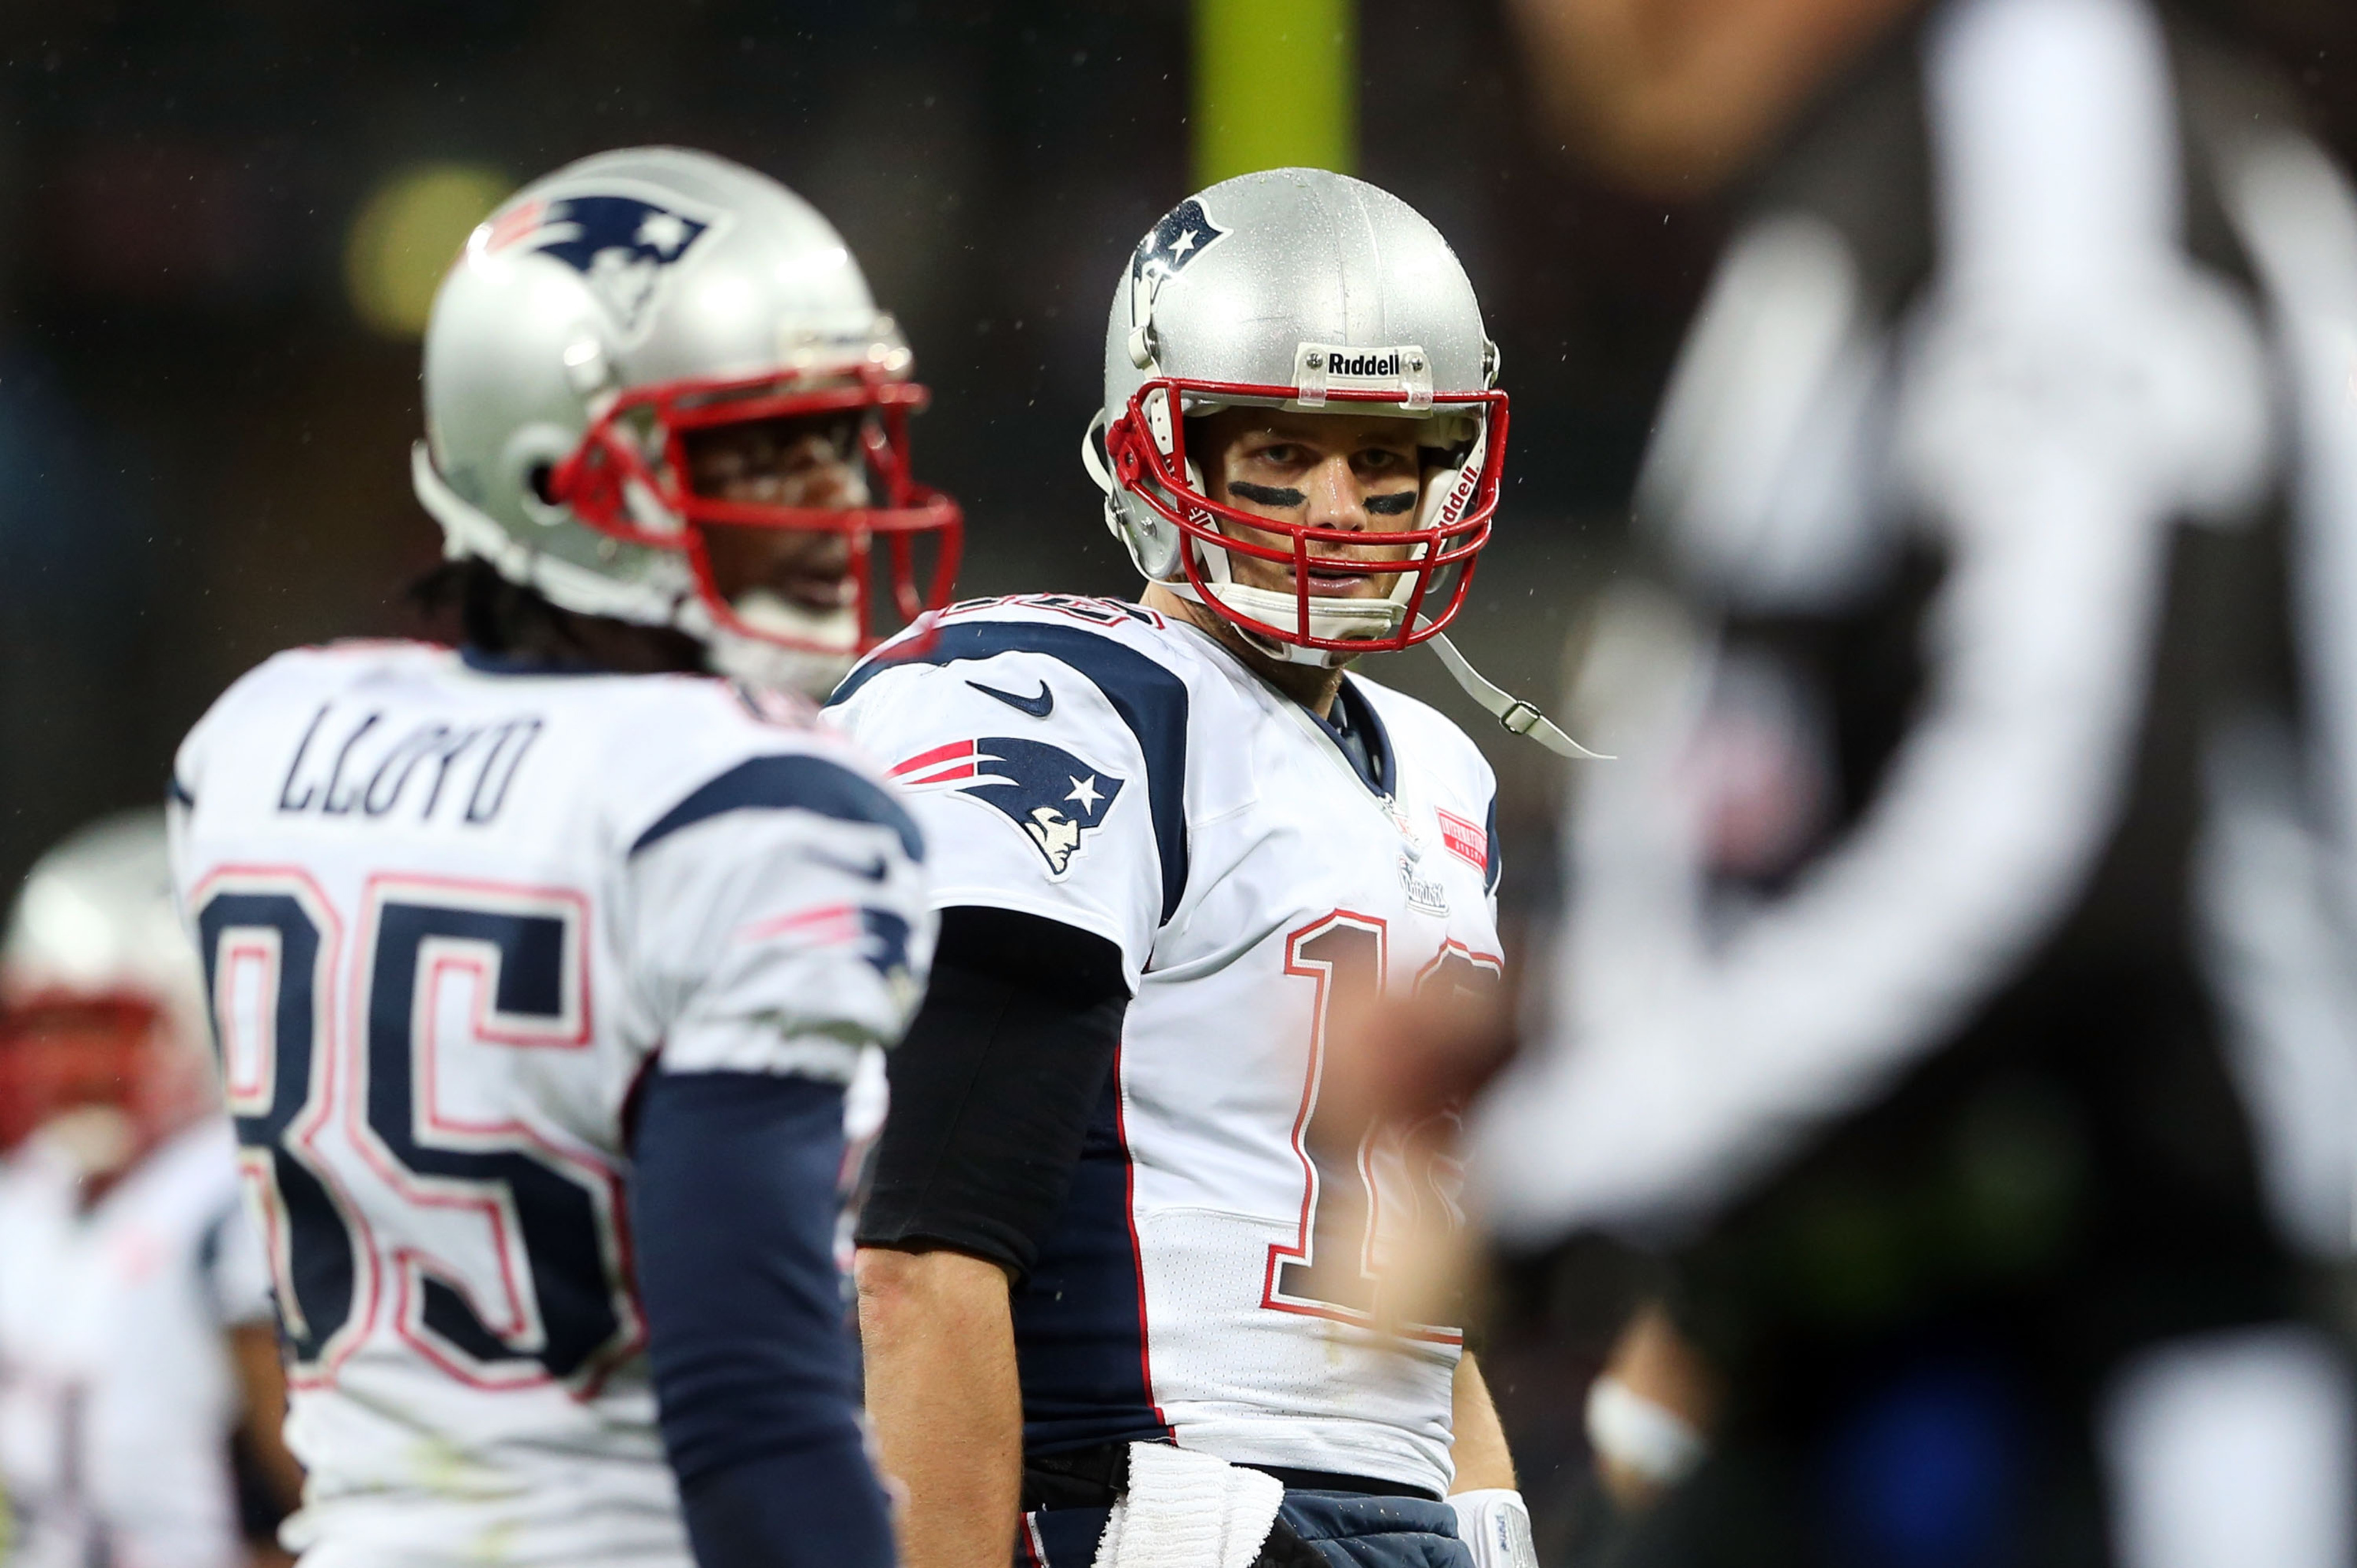 Patriots not expected to turn to Brandon Lloyd after Aaron Hernandez release